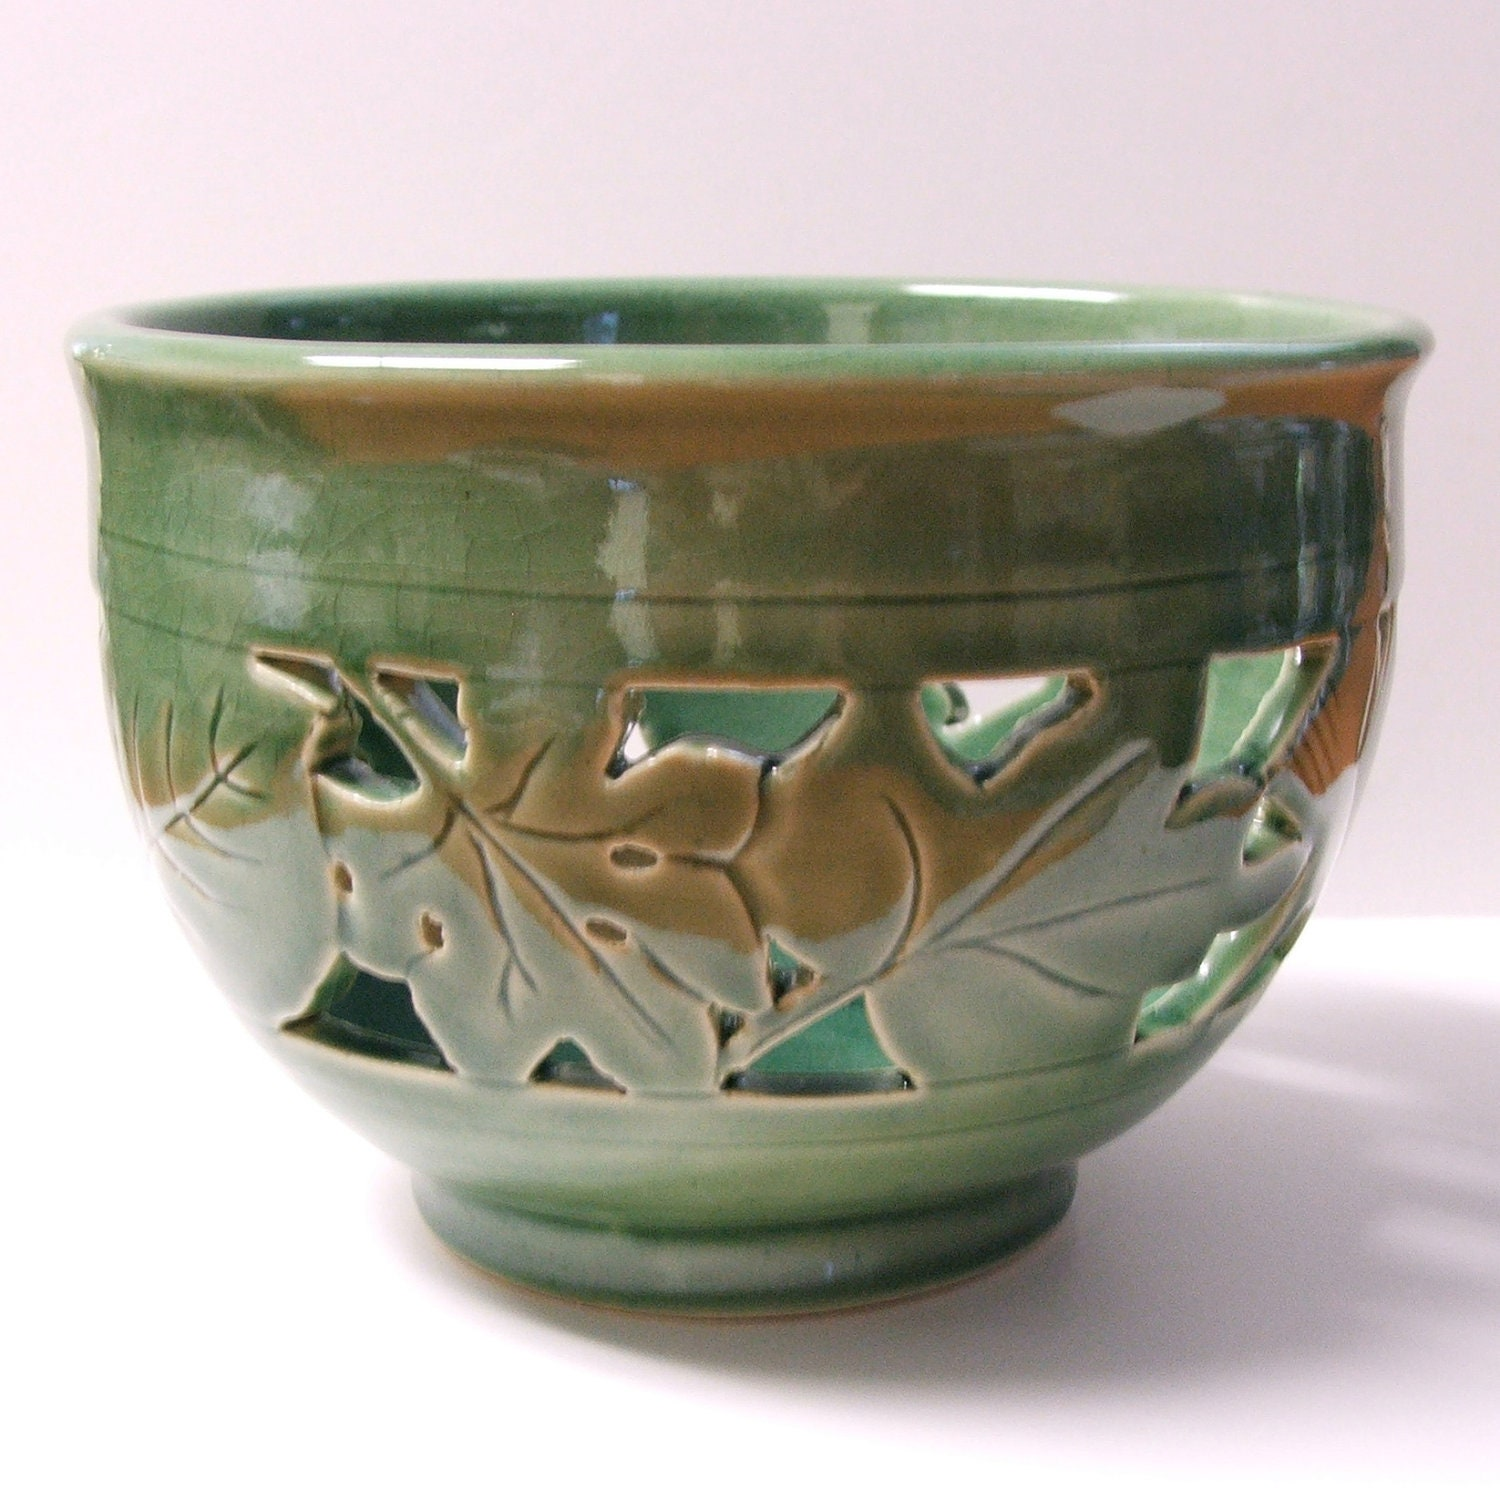 Ceramic Hand Carved Bowl Orchid Pot By Potterybysumiko On